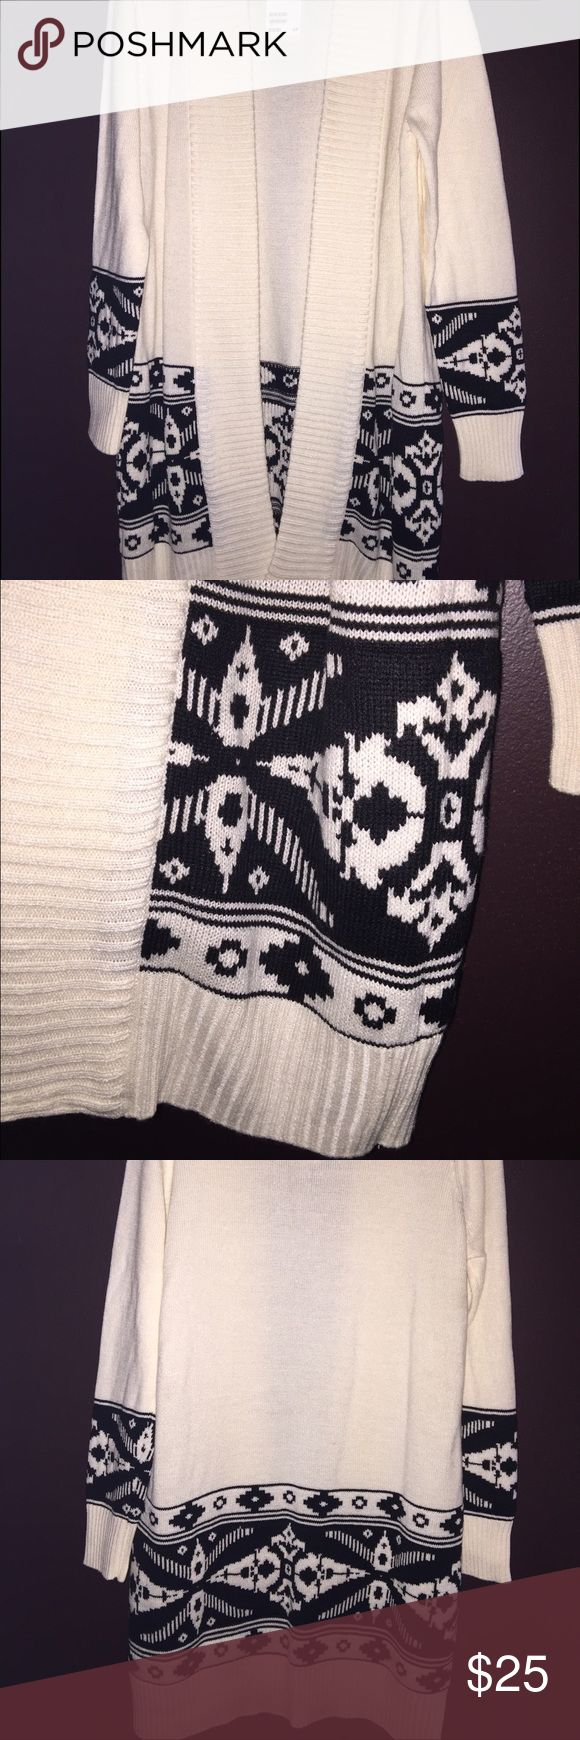 H&M Ladies long cardigan duster Size Large,  Ladies long cardigan with Fair isle details.  Creme and black.  Does not have buttoned or zippered closure,  it's meant to ne worn open.  I purchased to wear on Christmas but I've since lost weight and it's too large for me.  Never been worn,  tags still attached and still has fold lines. H&M Sweaters Cardigans